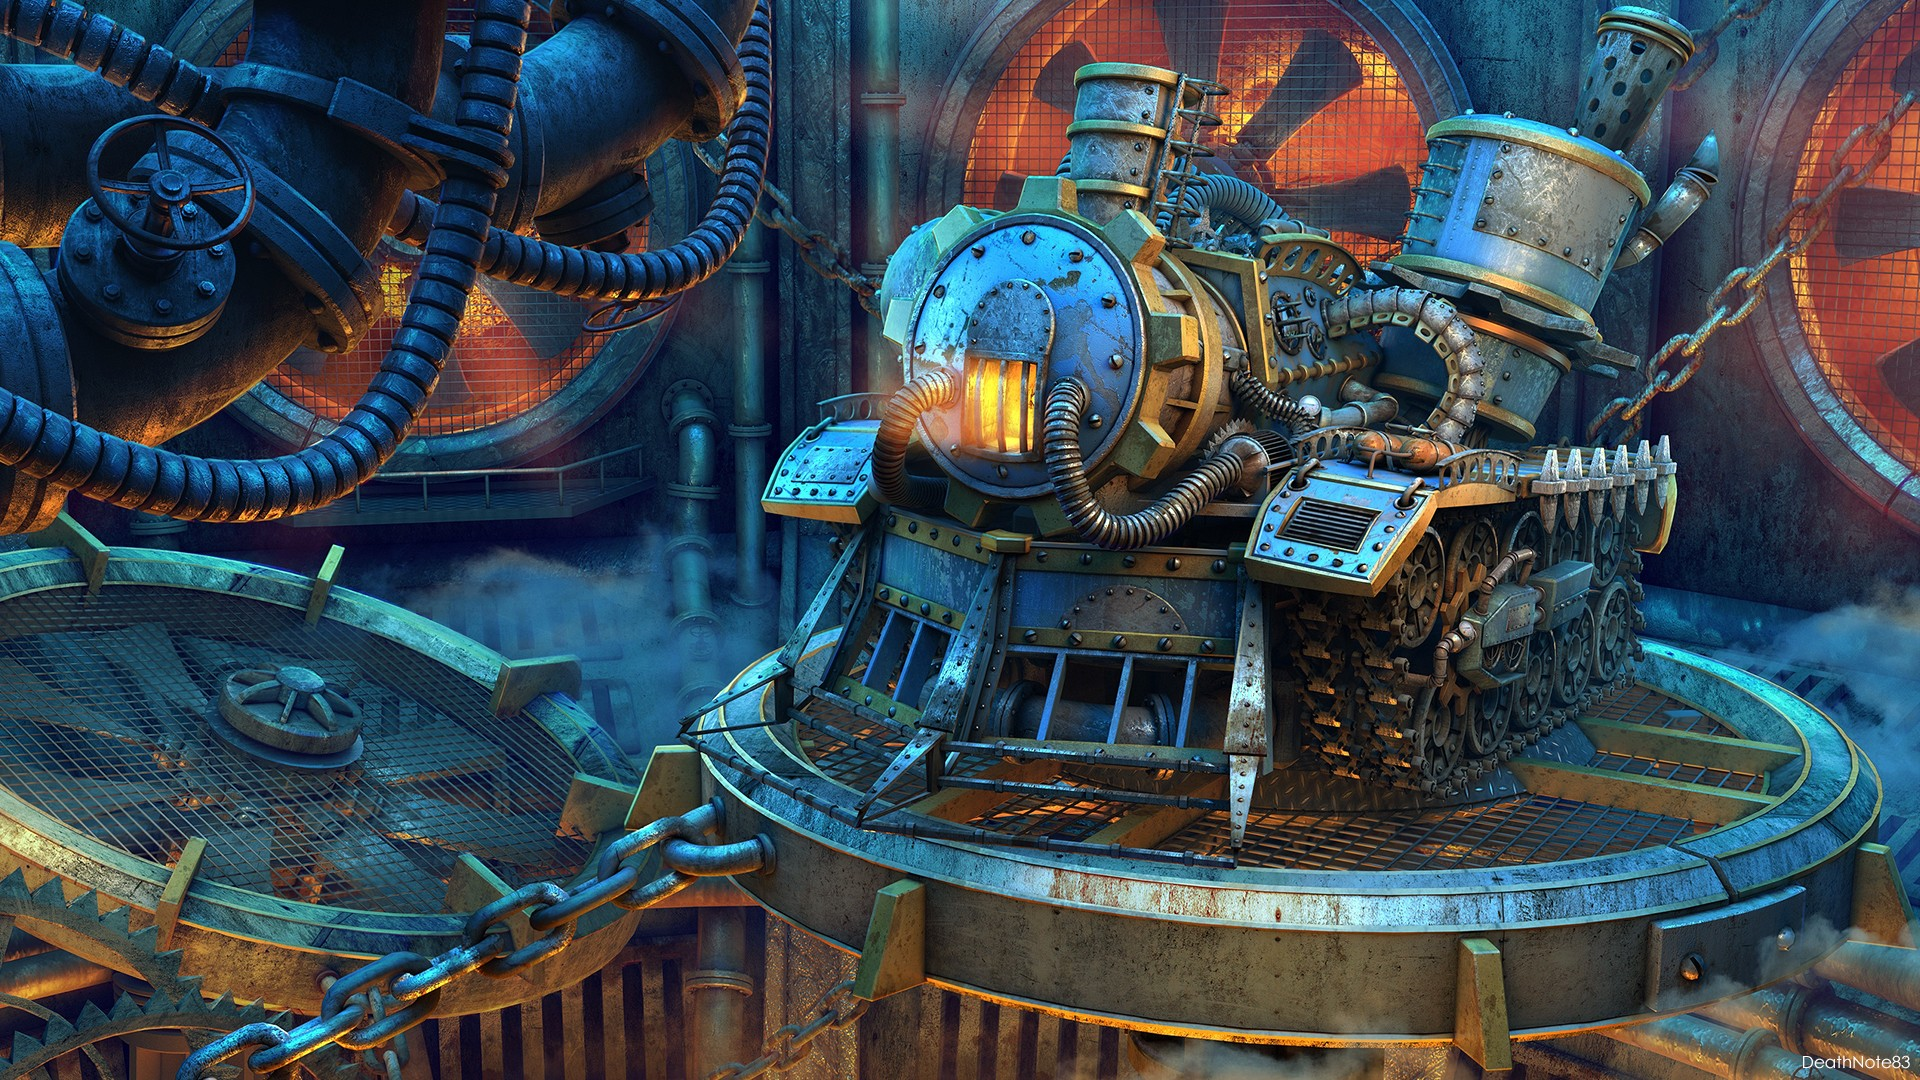 Steampunk Hd Wallpaper Background Image 1920x1080 Id